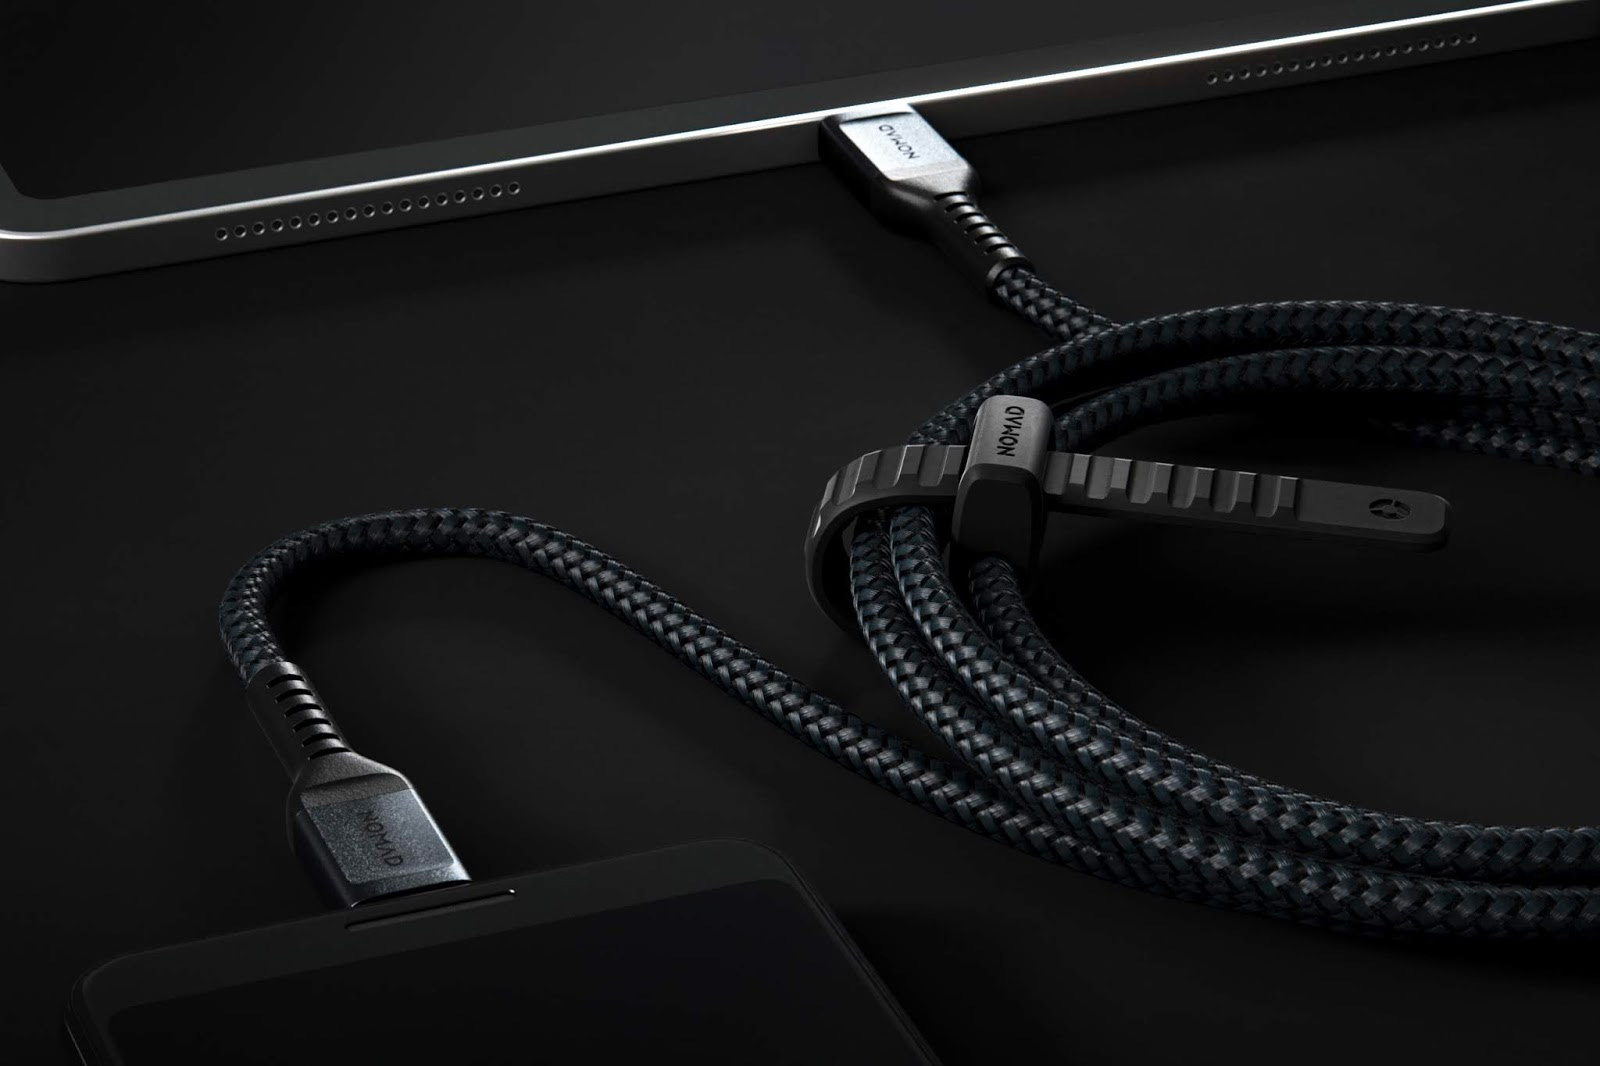 Nomad's Kevlar Charging Cables: Tough & Fast at werd.com